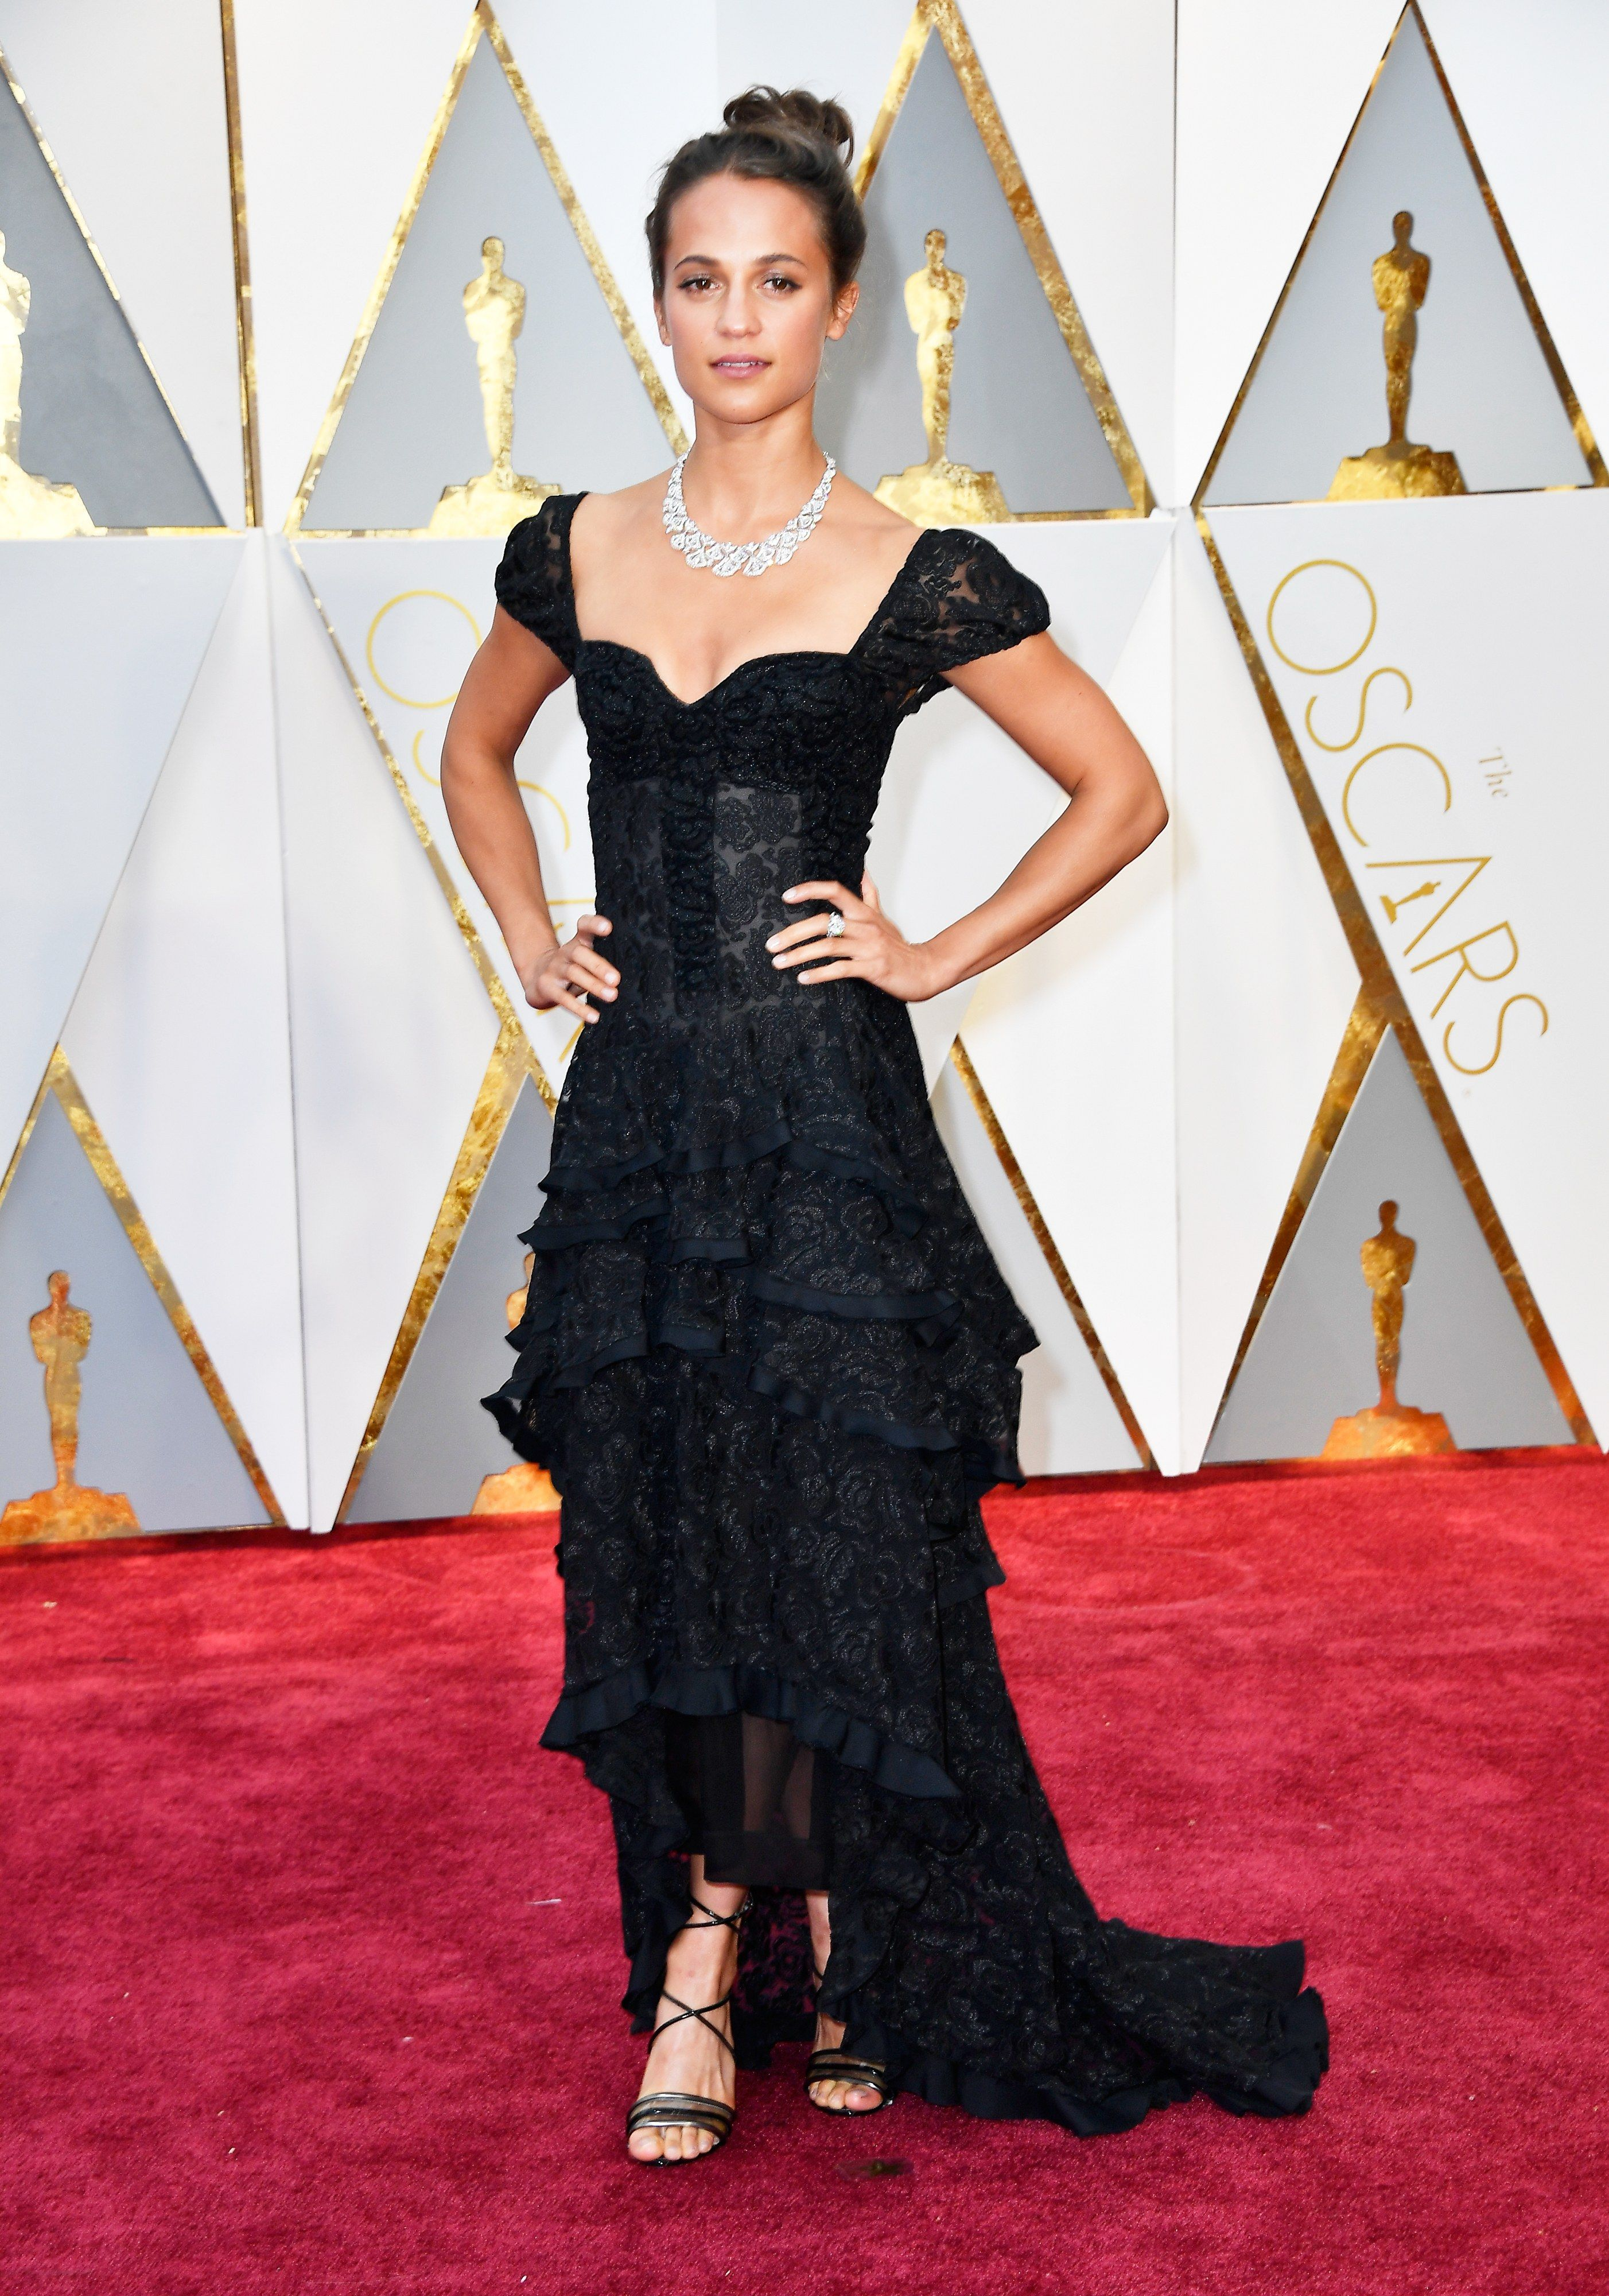 Oscars 2017 The Best Dressed Celebrities On The Red Carpet Nice Dresses Oscars Red Carpet Dresses Celebrity Dresses